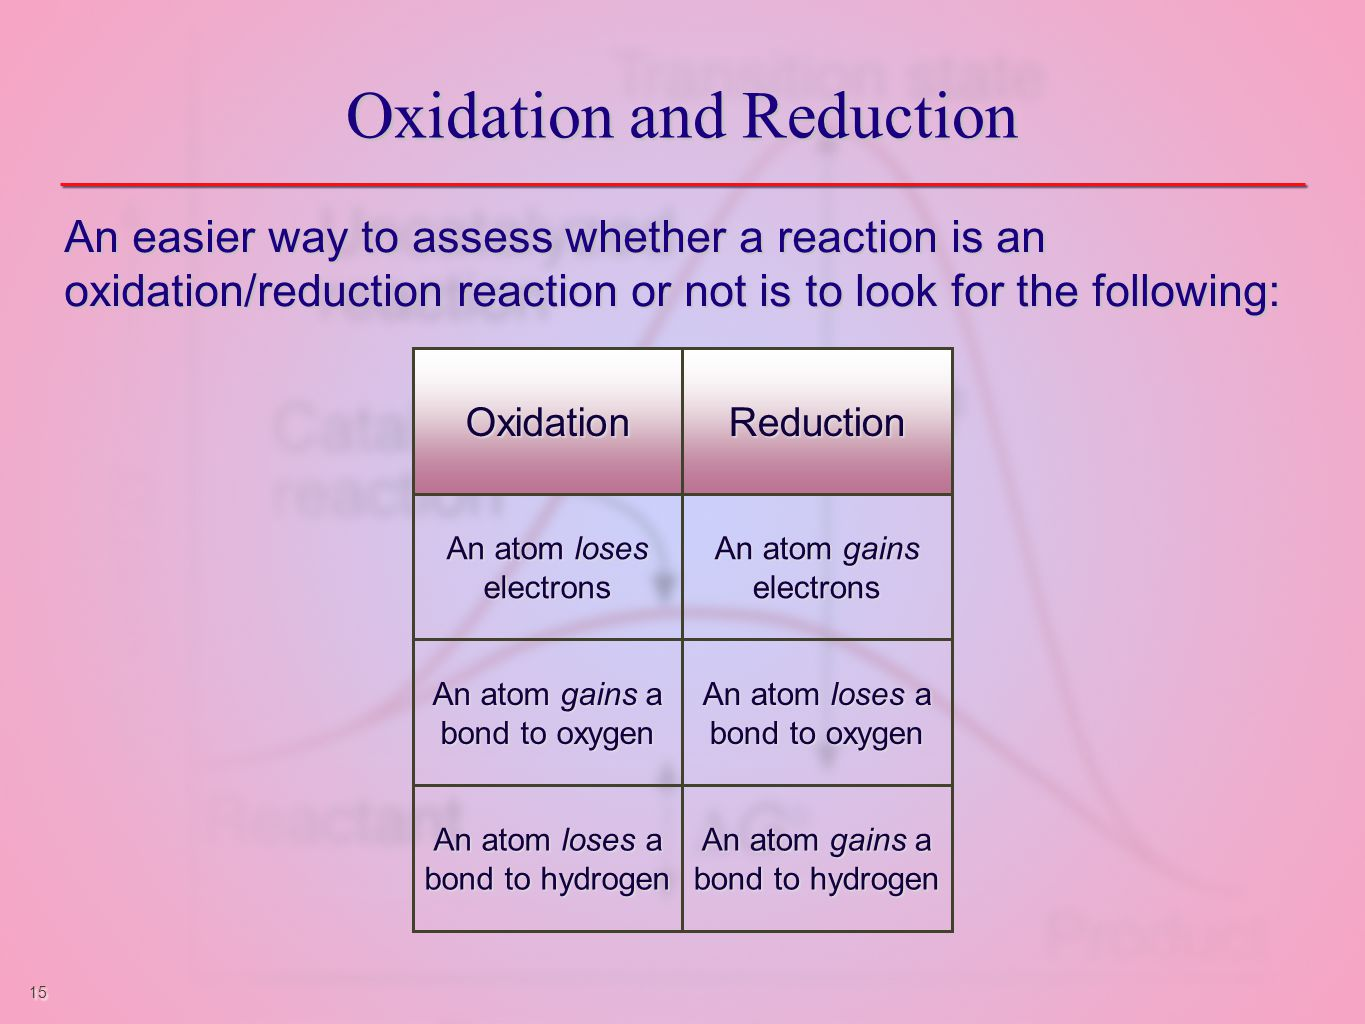 15 Oxidation and Reduction An easier way to assess whether a reaction is an oxidation/reduction reaction or not is to look for the following: OxidationReduction An atom loses electrons An atom gains electrons An atom gains a bond to oxygen An atom loses a bond to oxygen An atom loses a bond to hydrogen An atom gains a bond to hydrogen